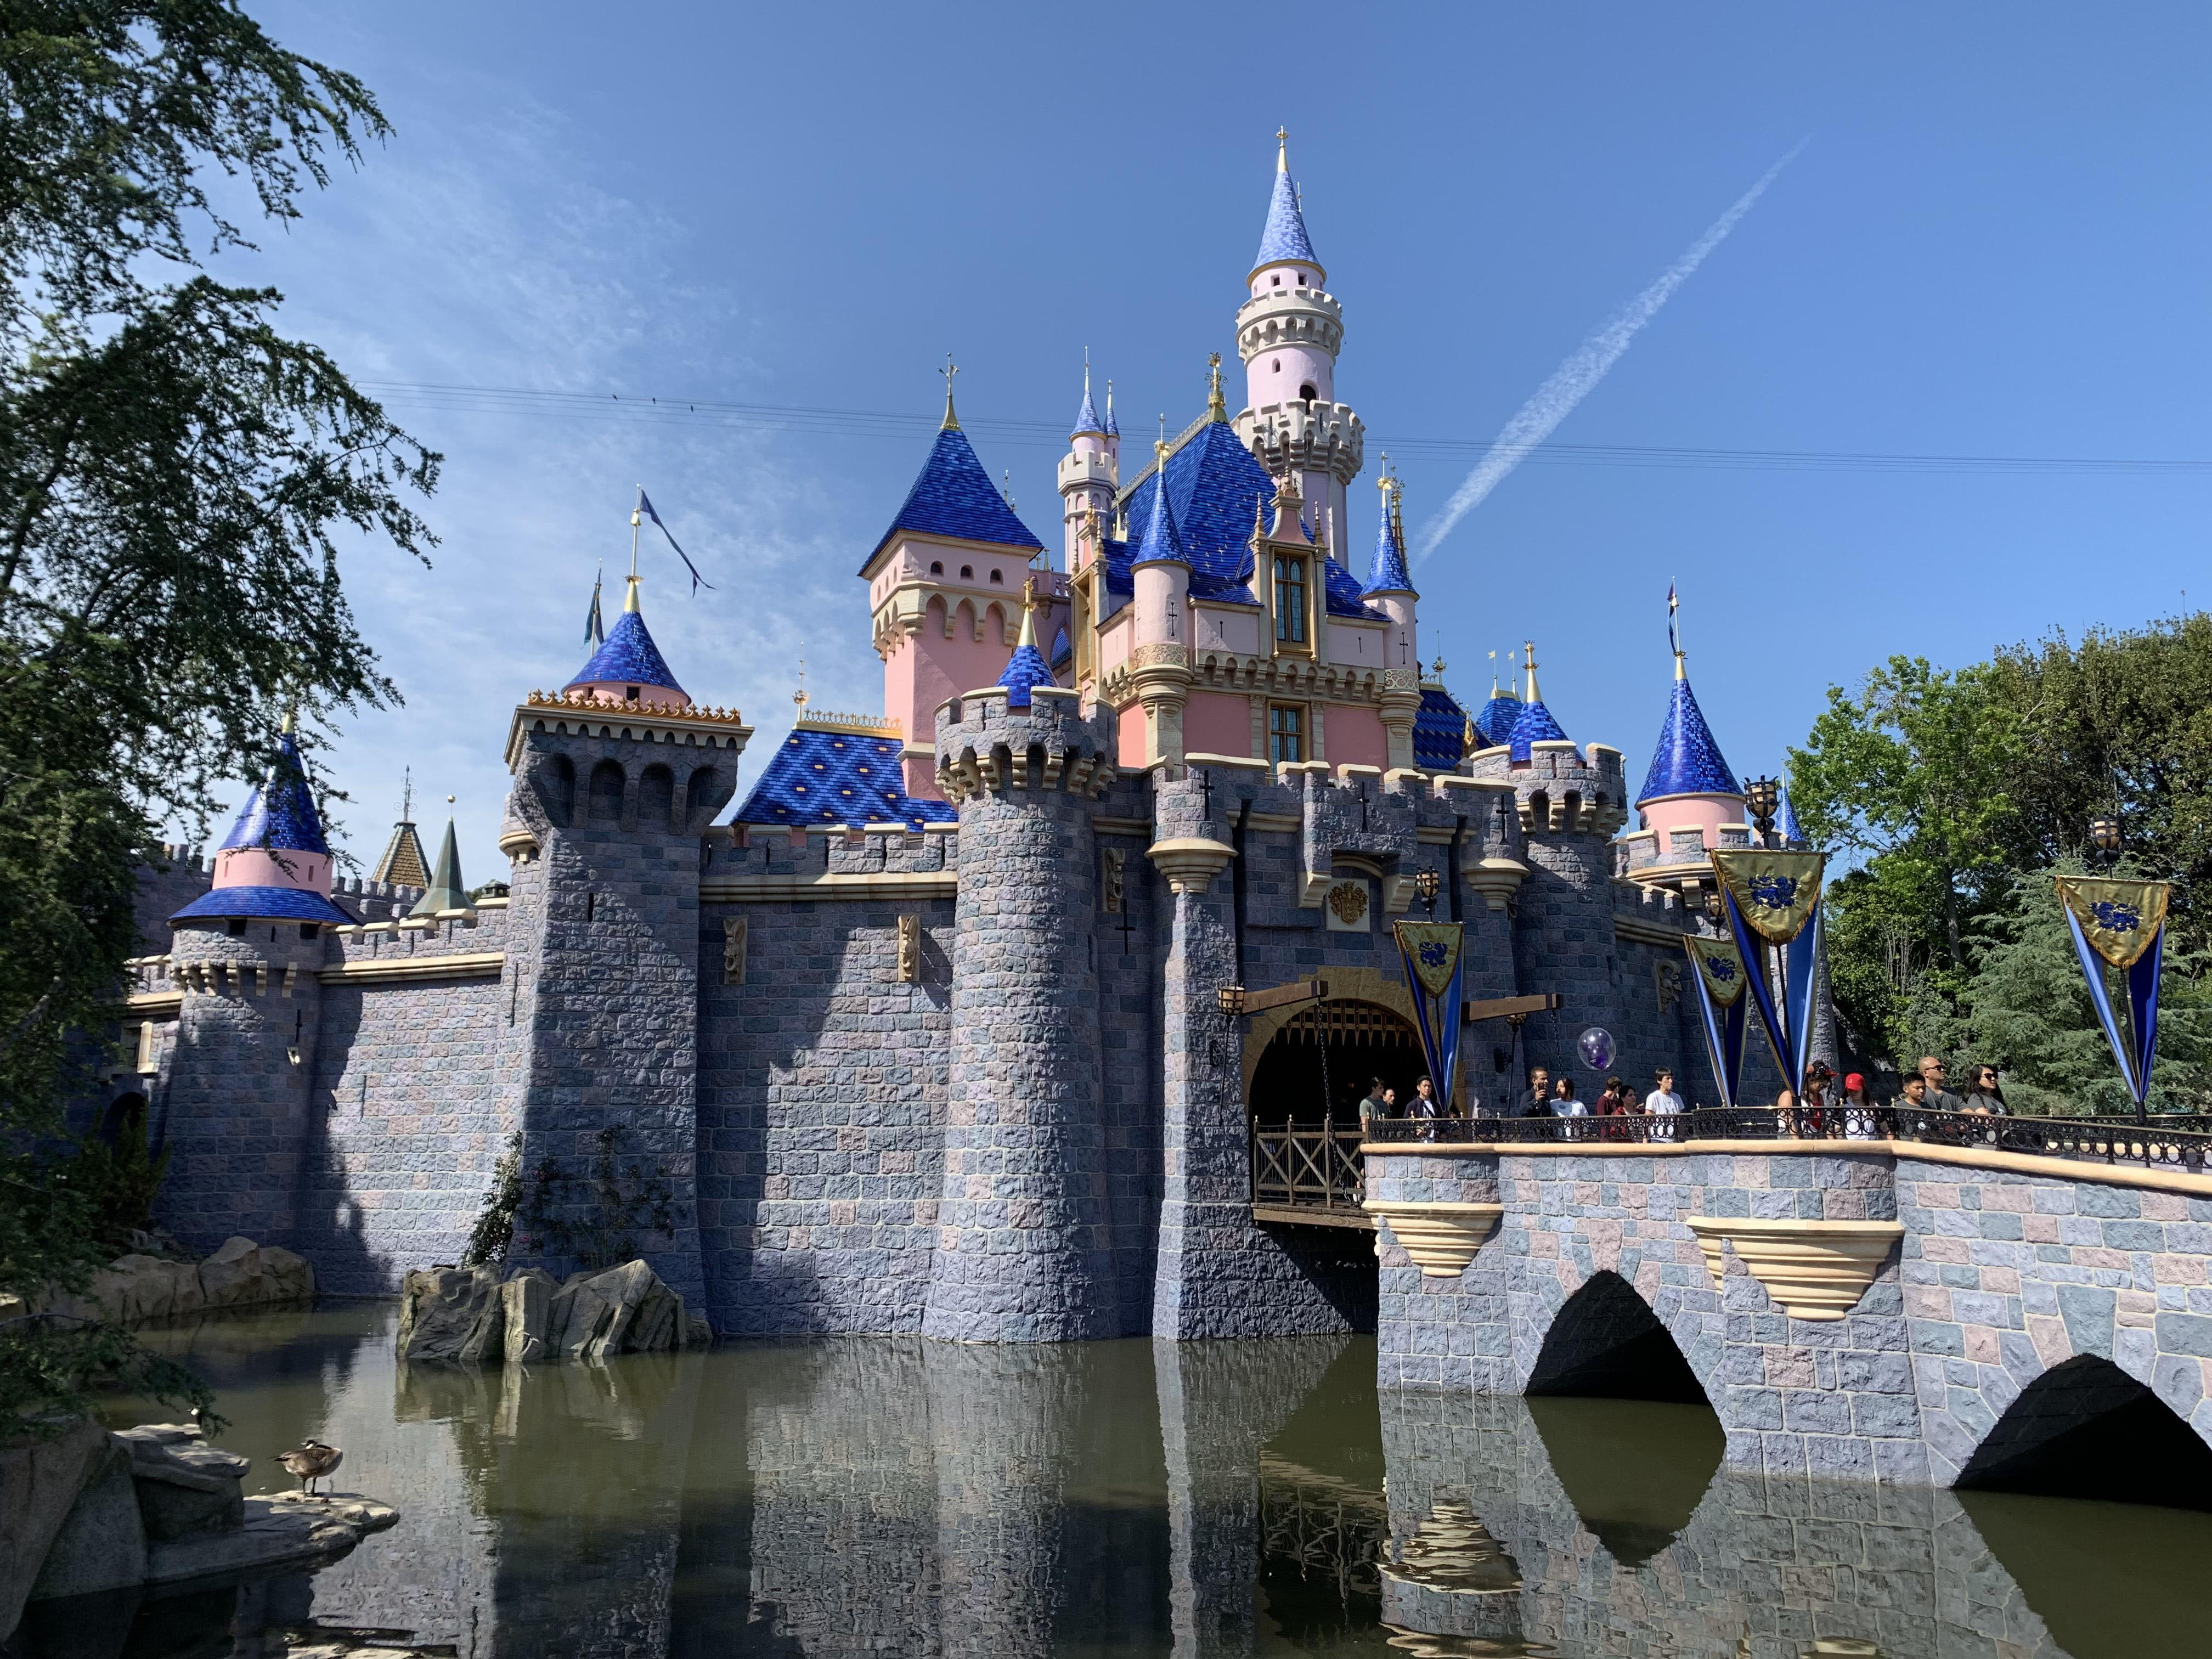 Disneyland may be one of the reasons for you to move in Anaheim.